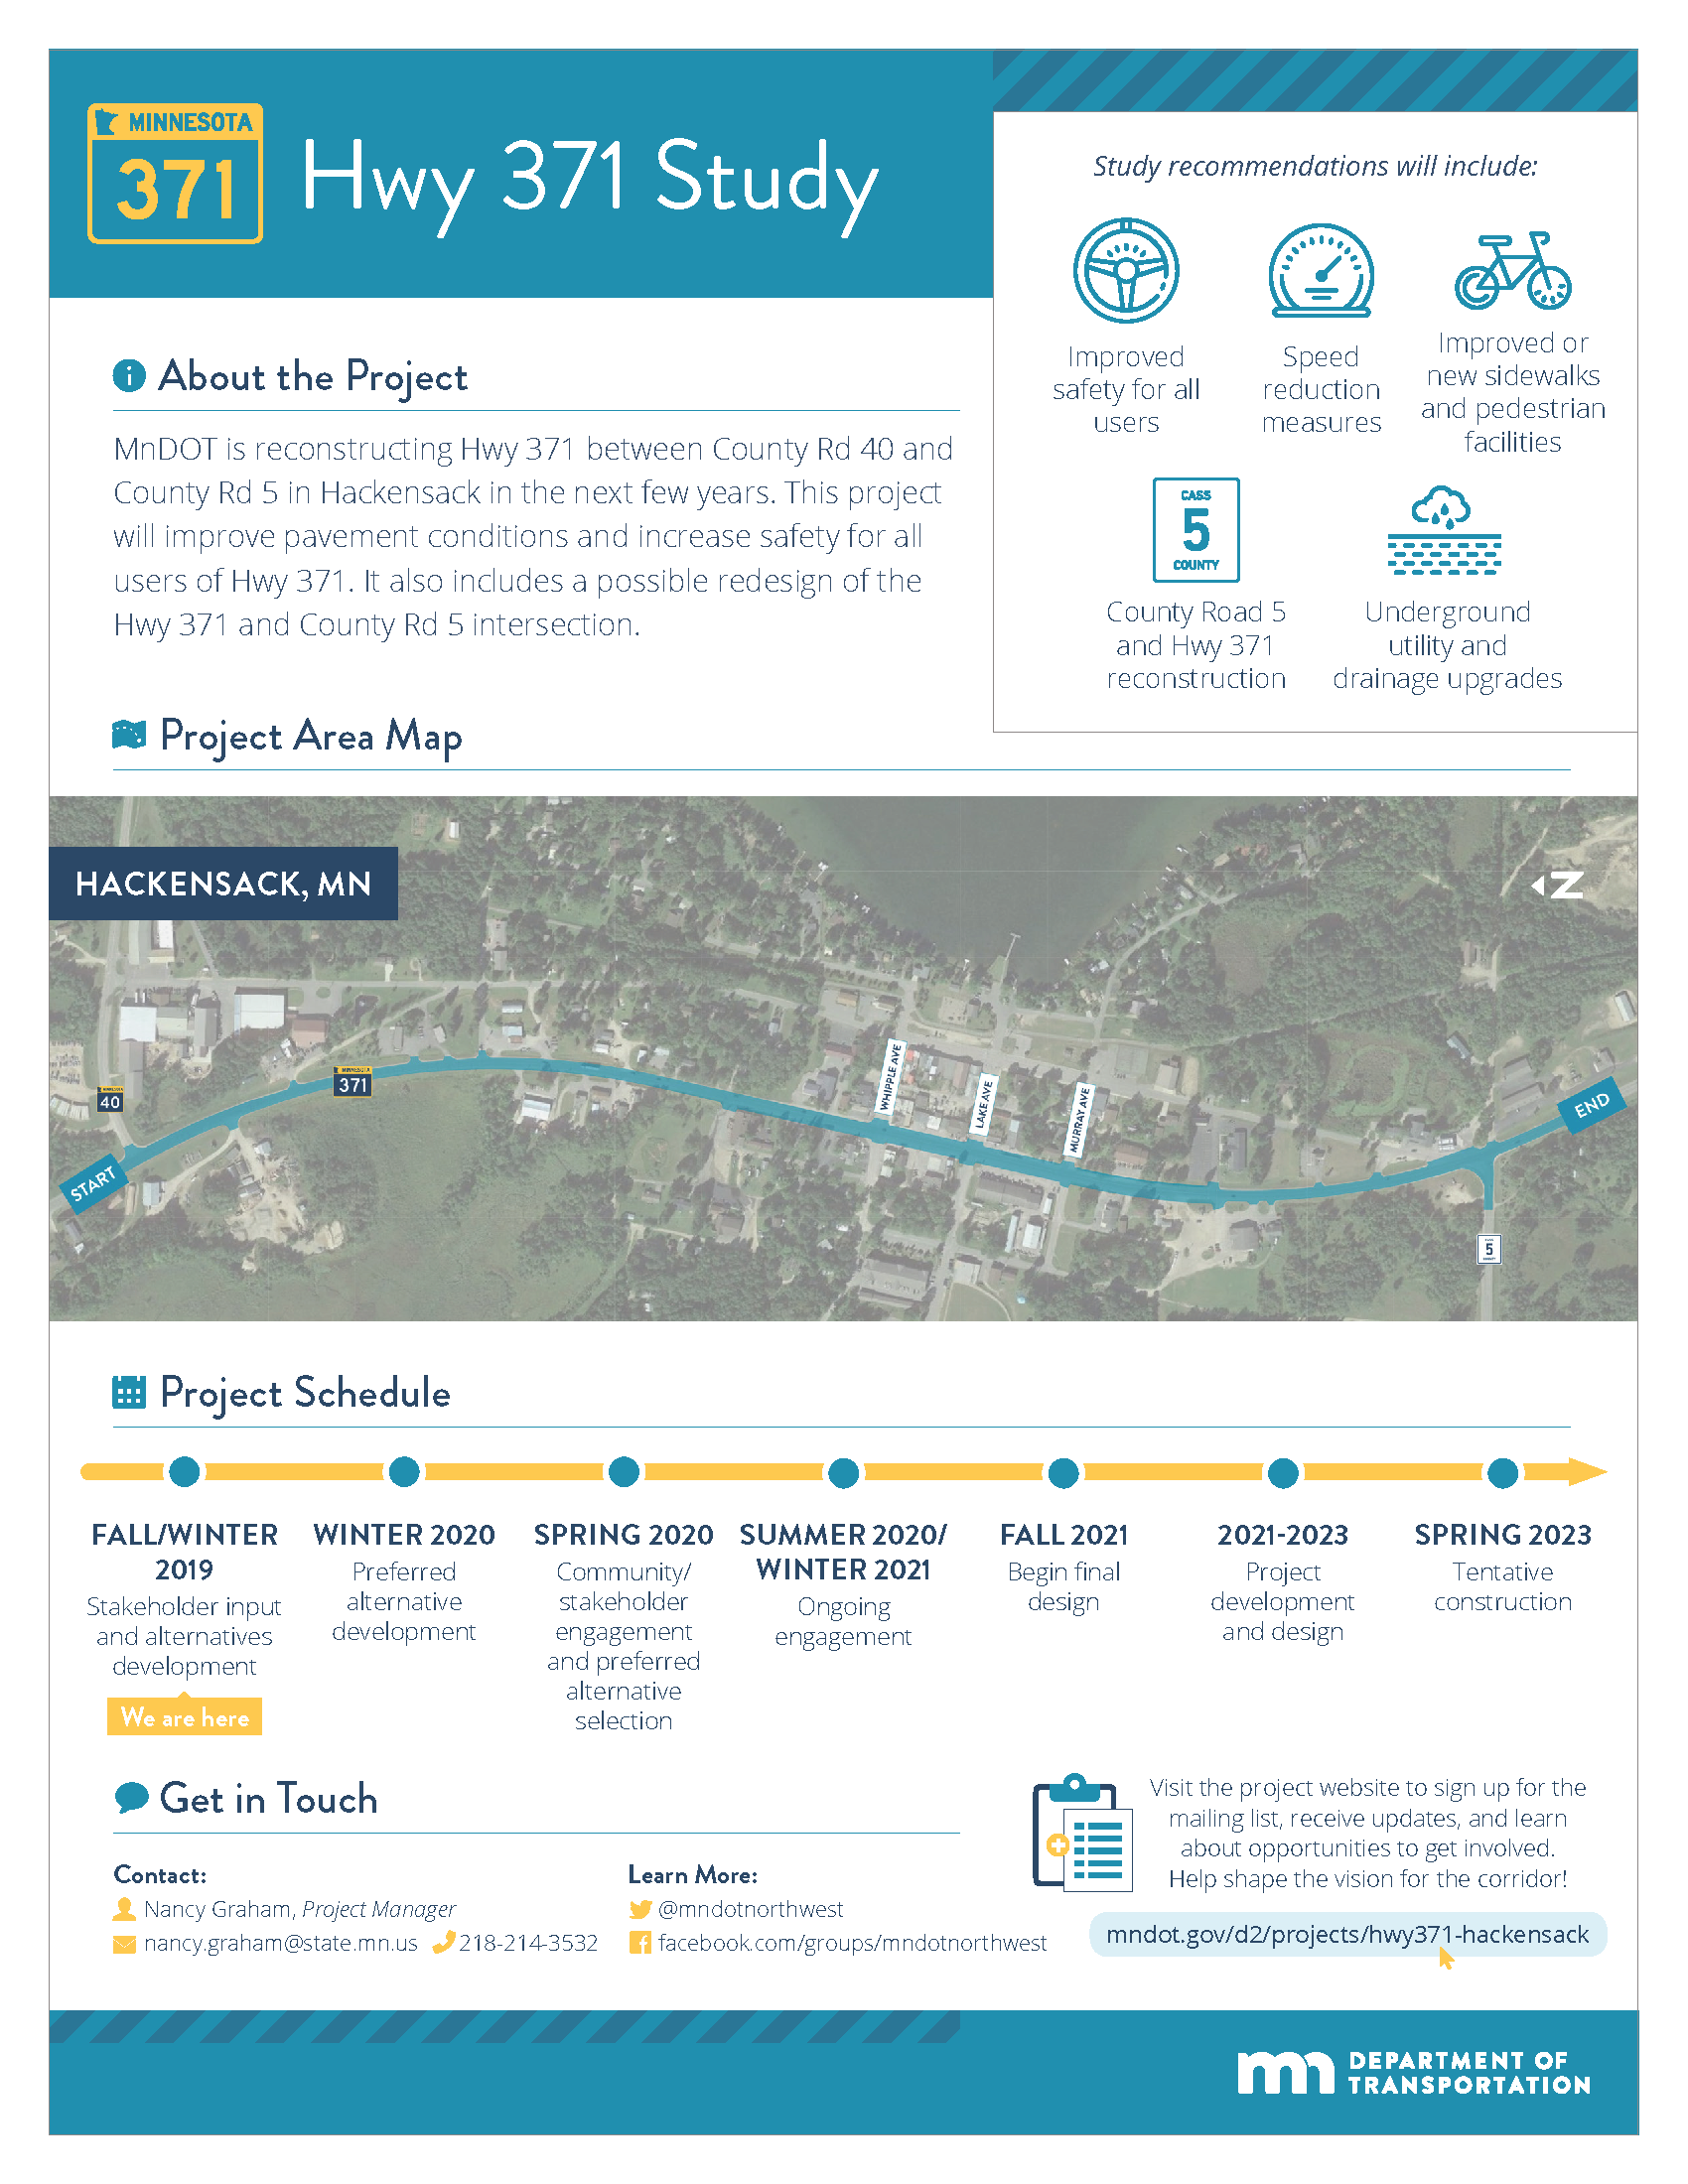 Highway 371 study infographic describing the project